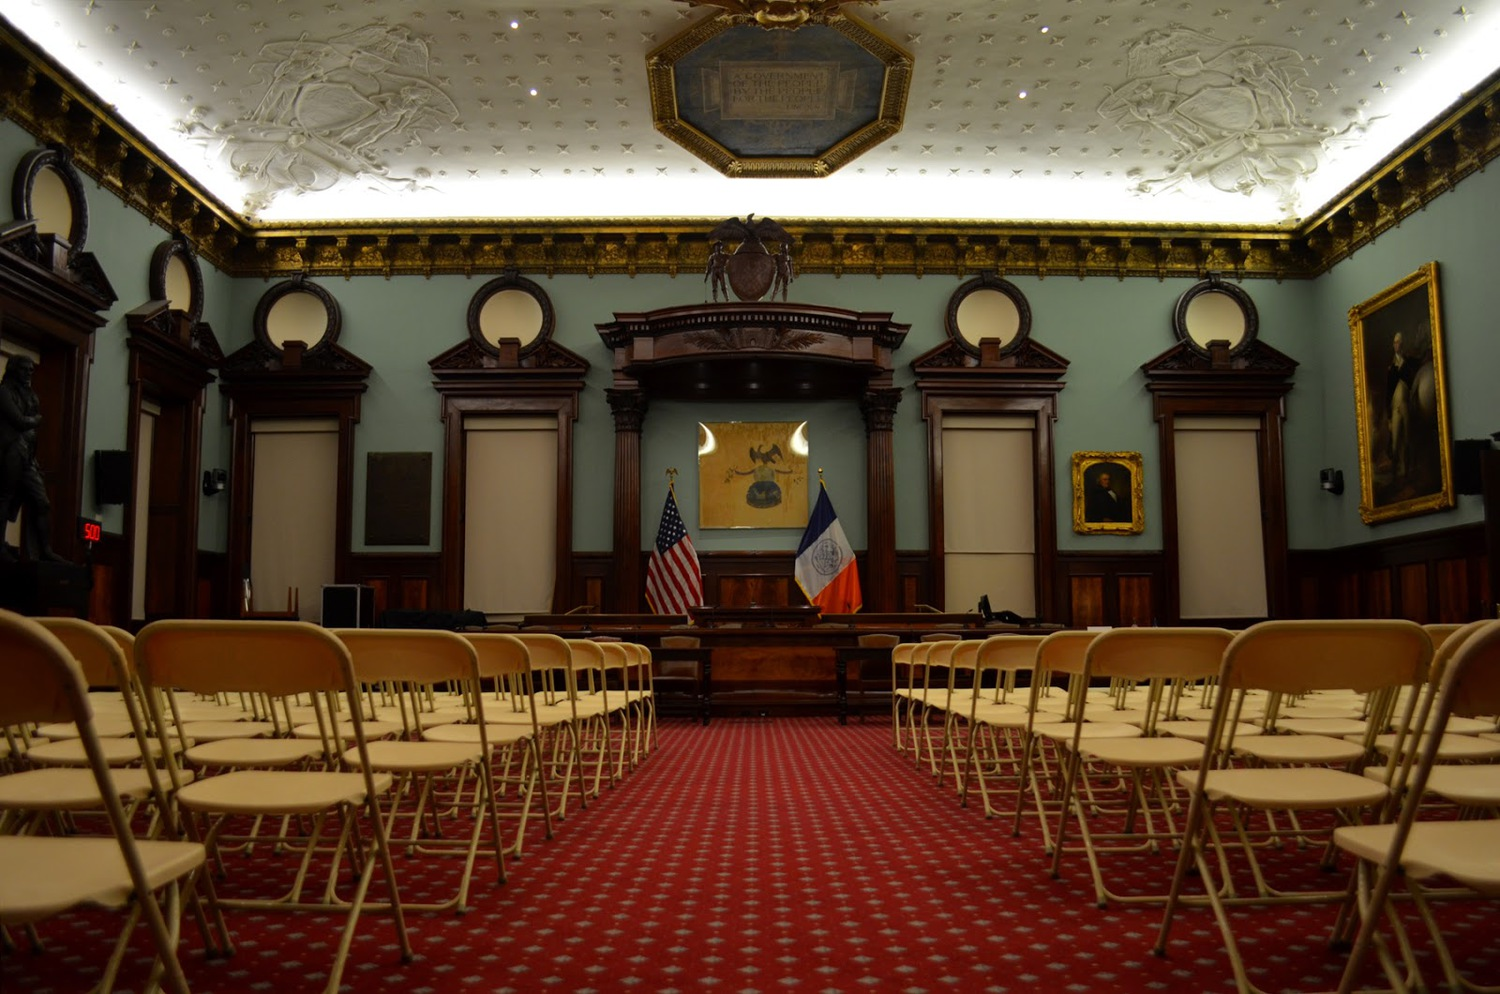 Also, if one feels politically motivated, you may take part in Council meetings in the Hall's Council Chambers.